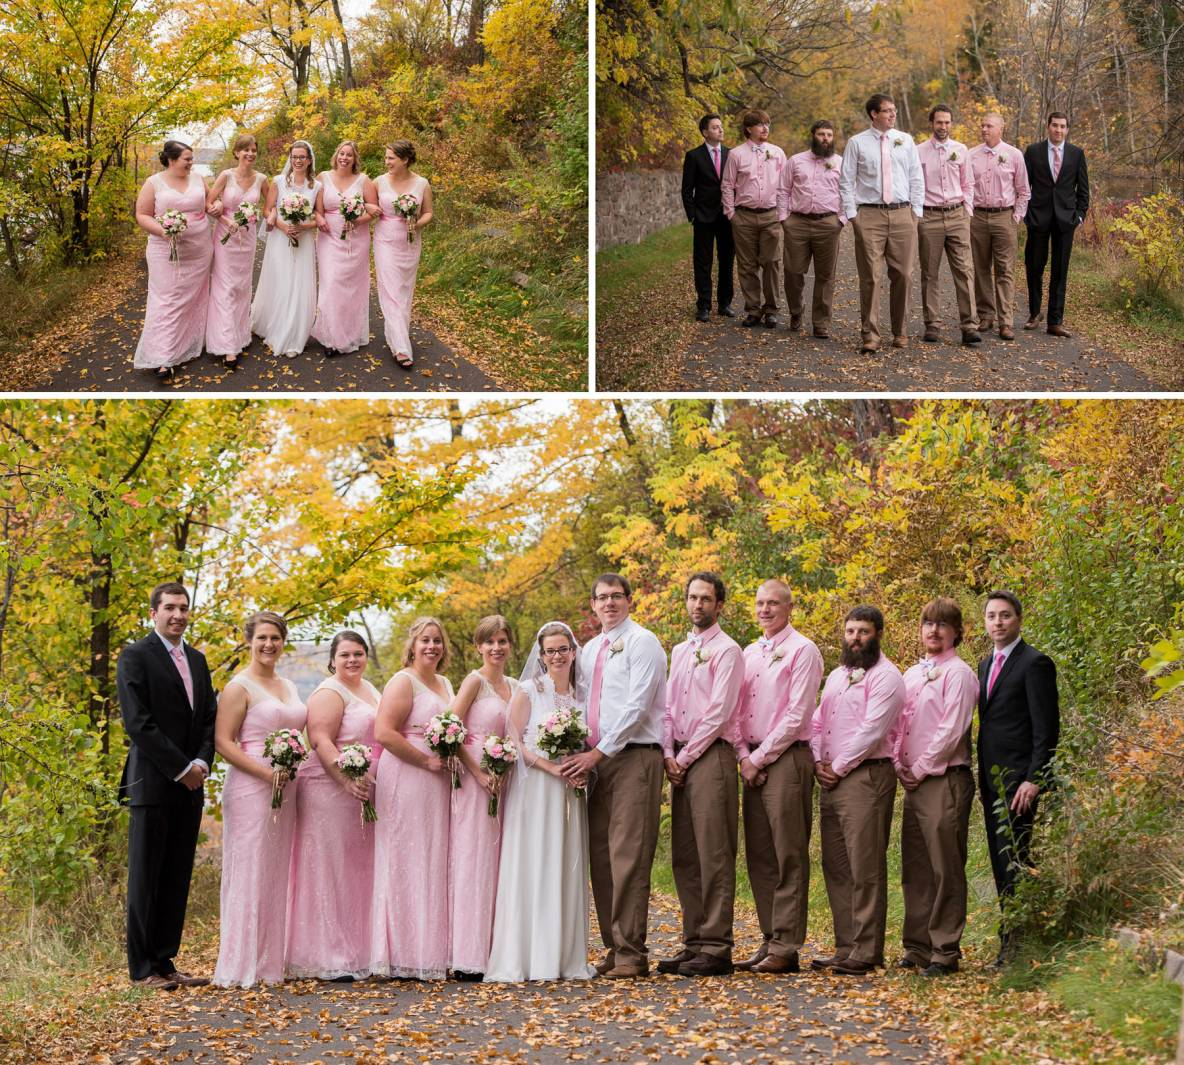 Photos of the wedding party looking sharp outdoors in the fall colors.